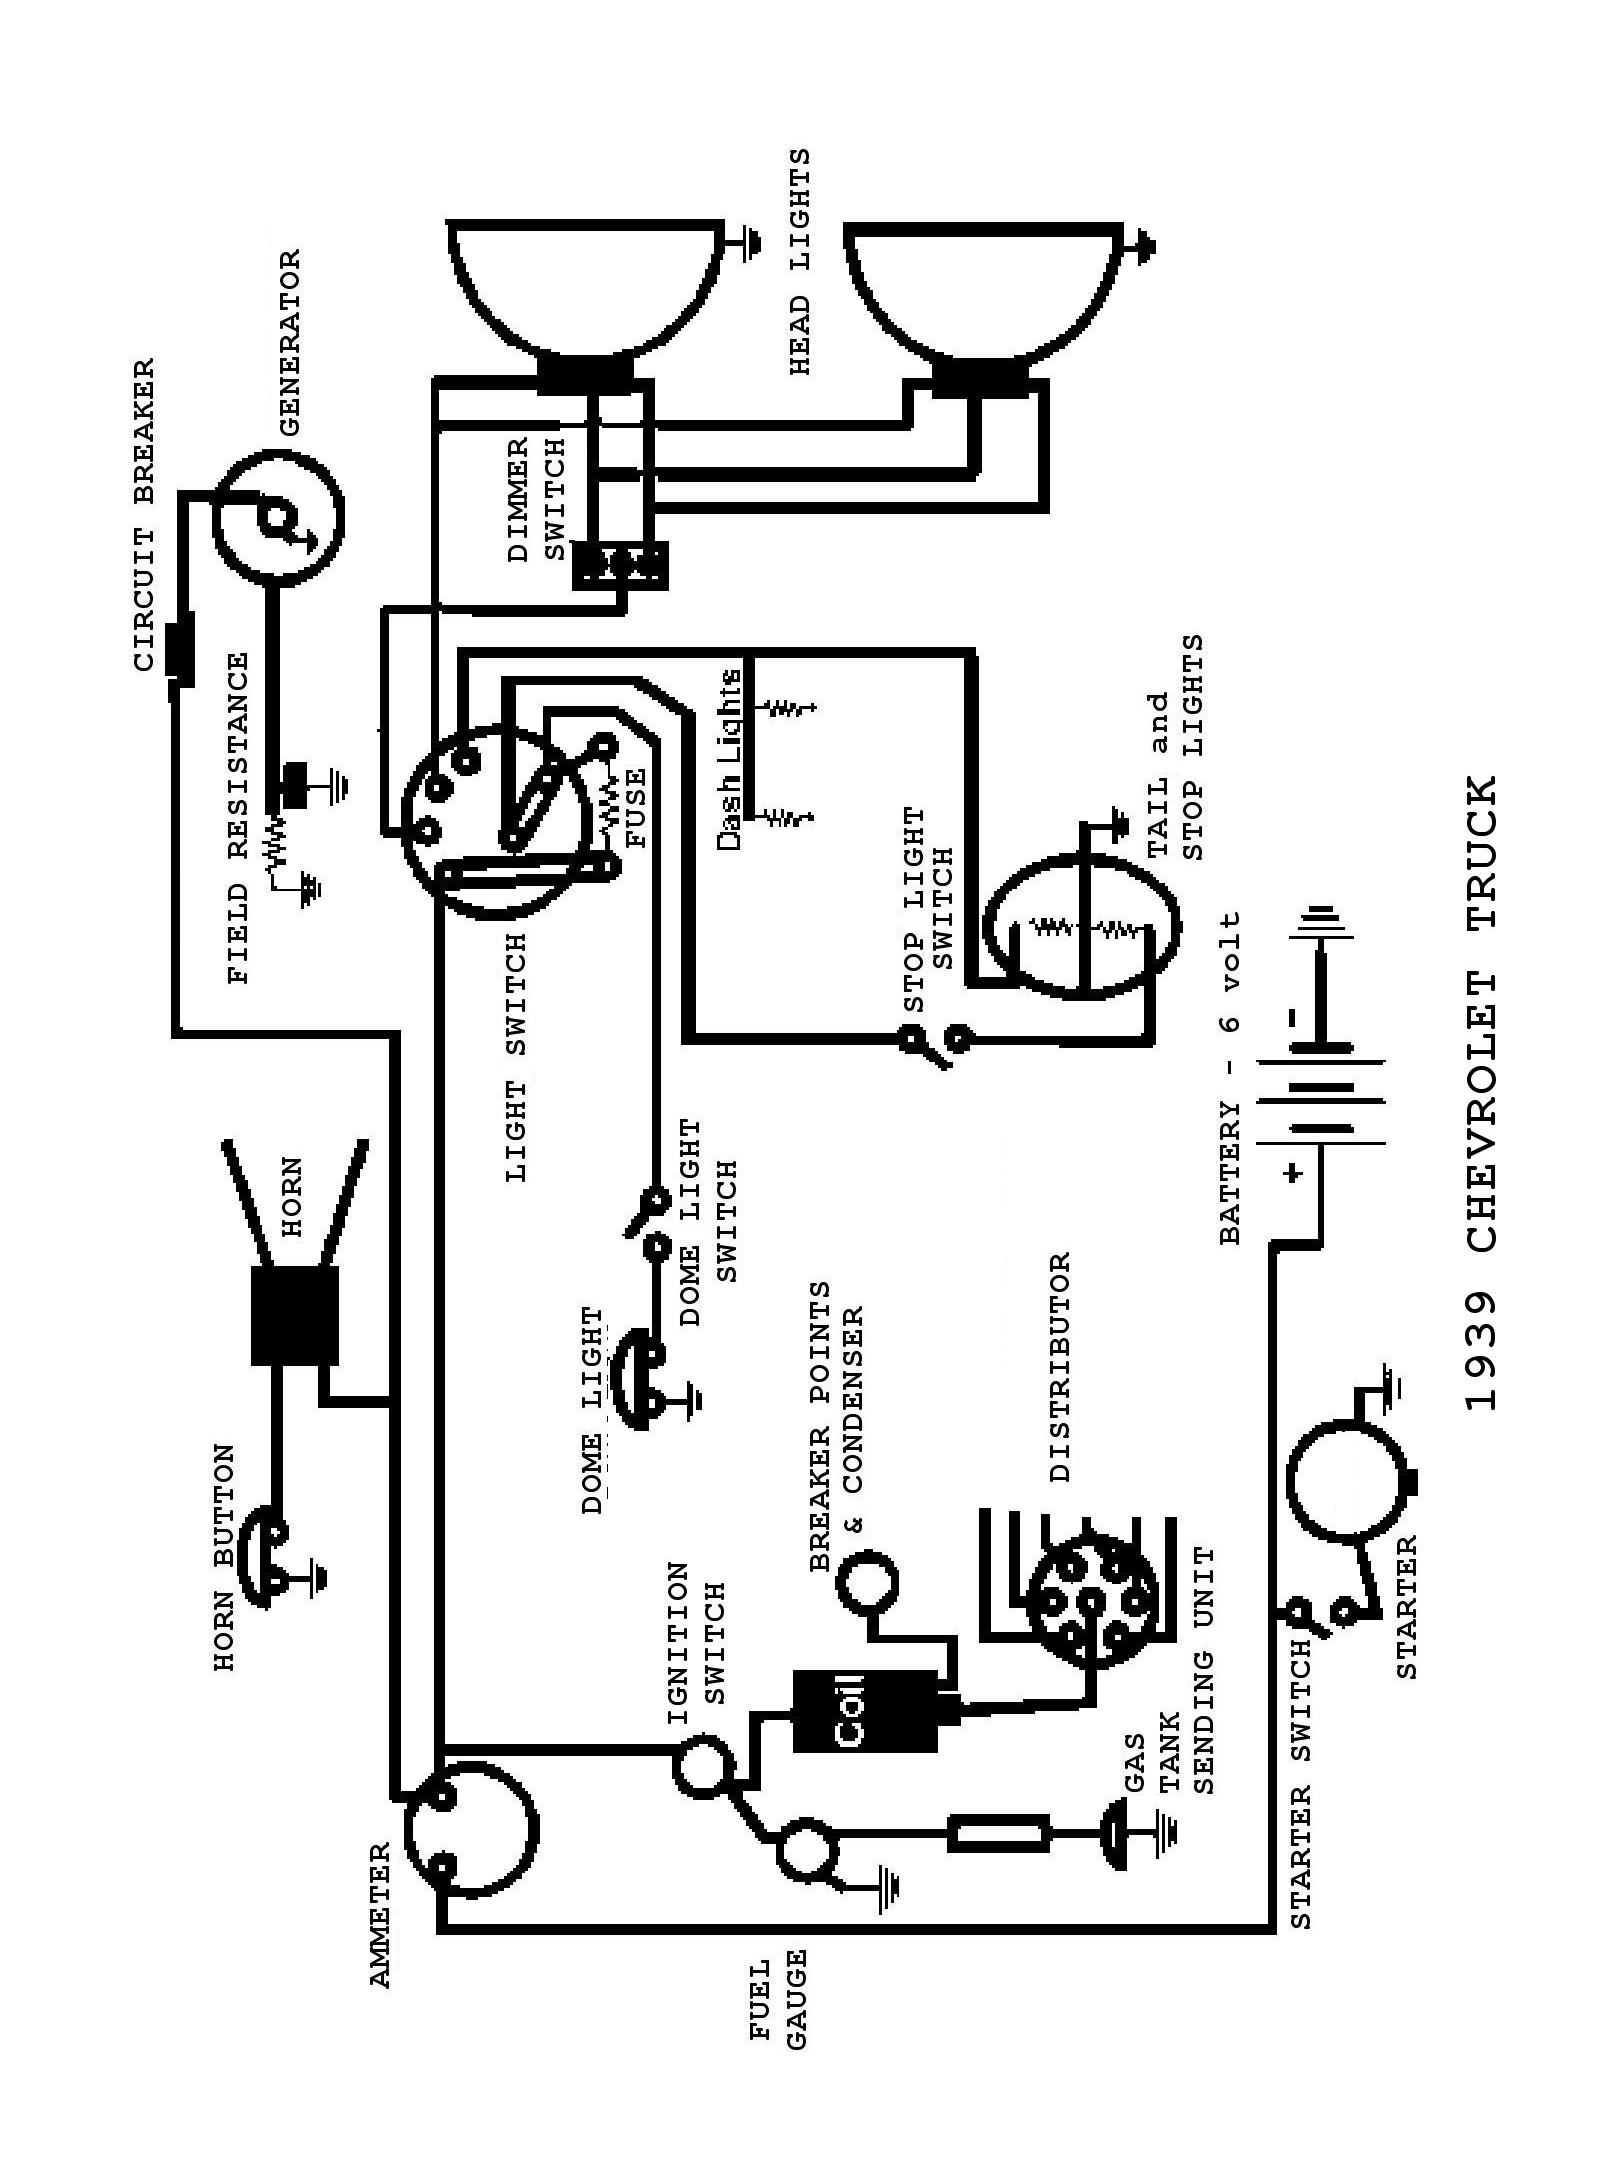 39truck wiring diagrams for trucks the wiring diagram readingrat net Simple Wiring Schematics at gsmx.co